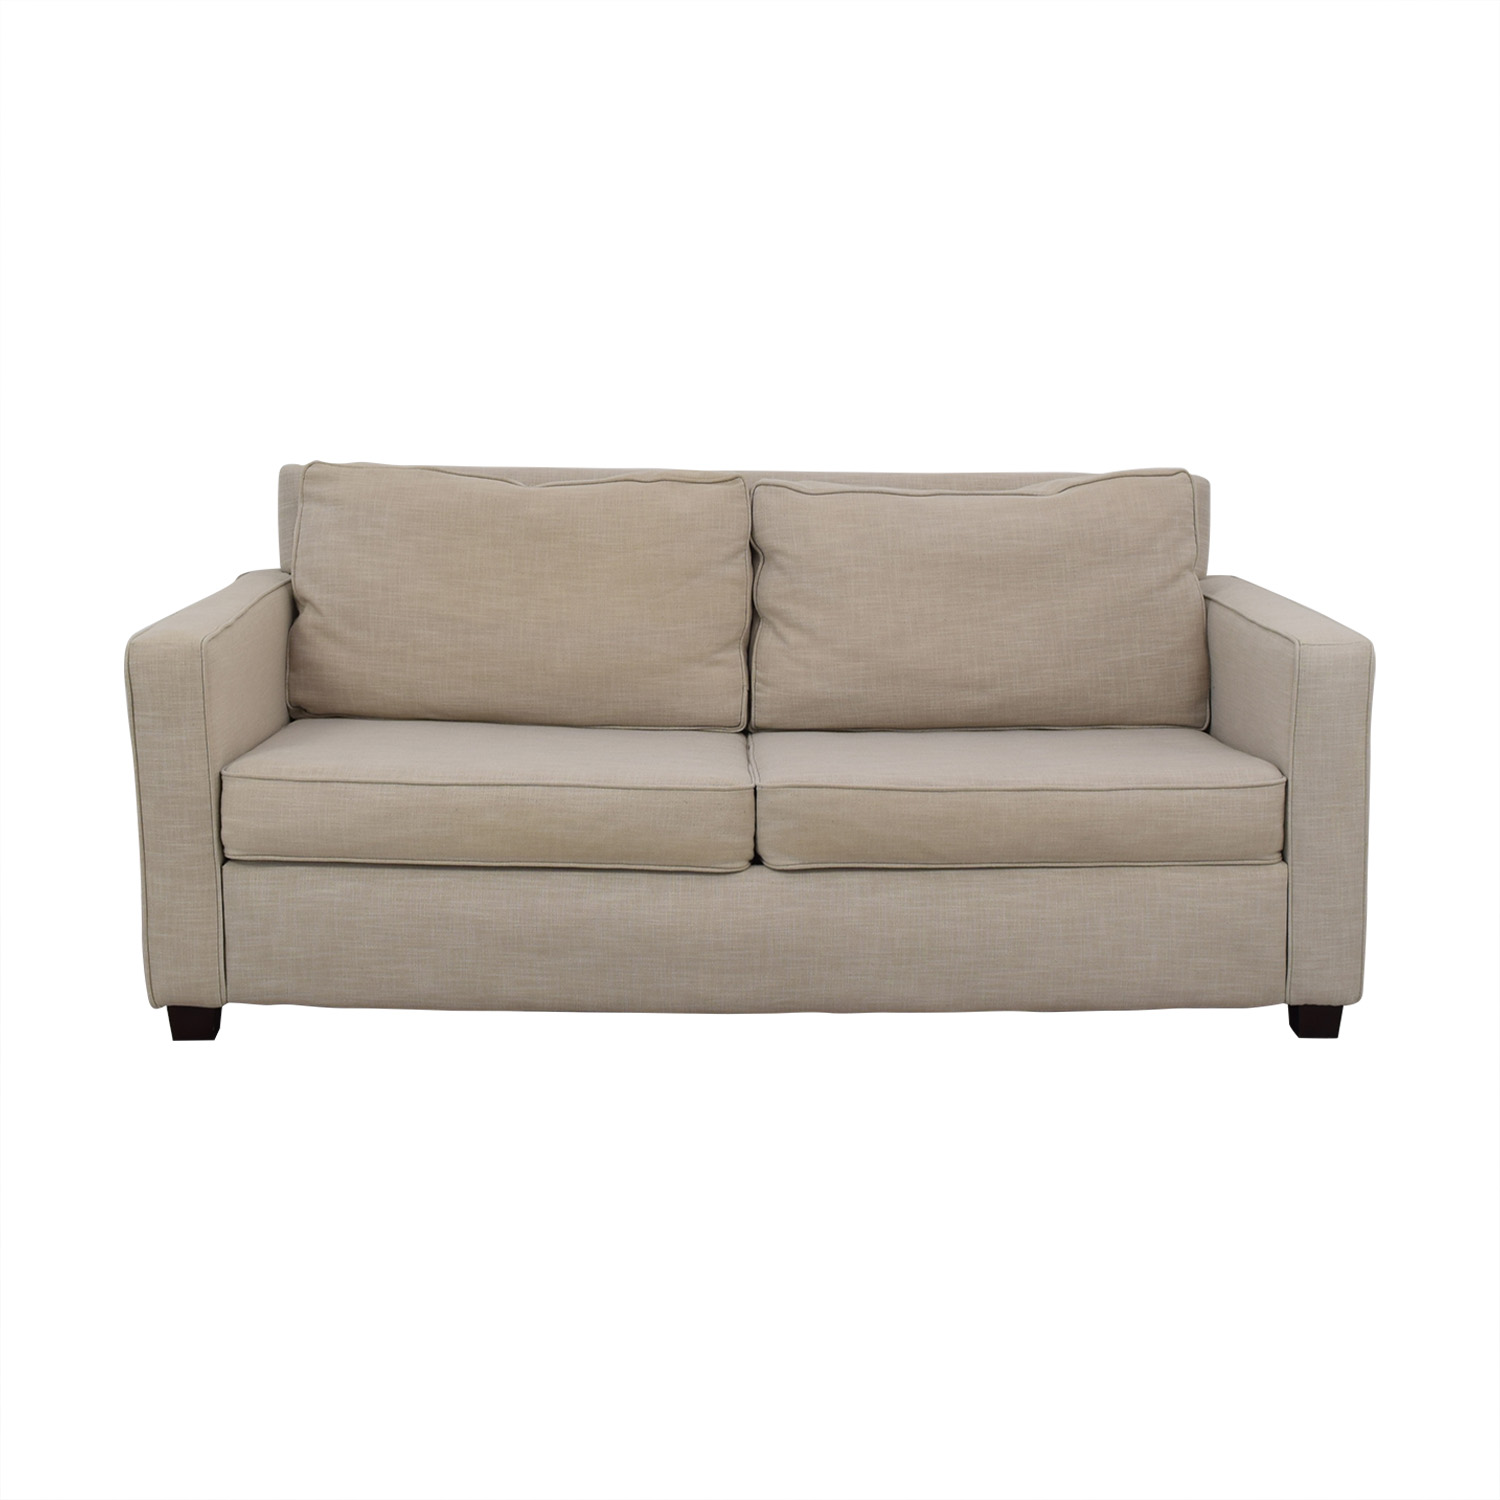 West Elm Henry Sofa sale